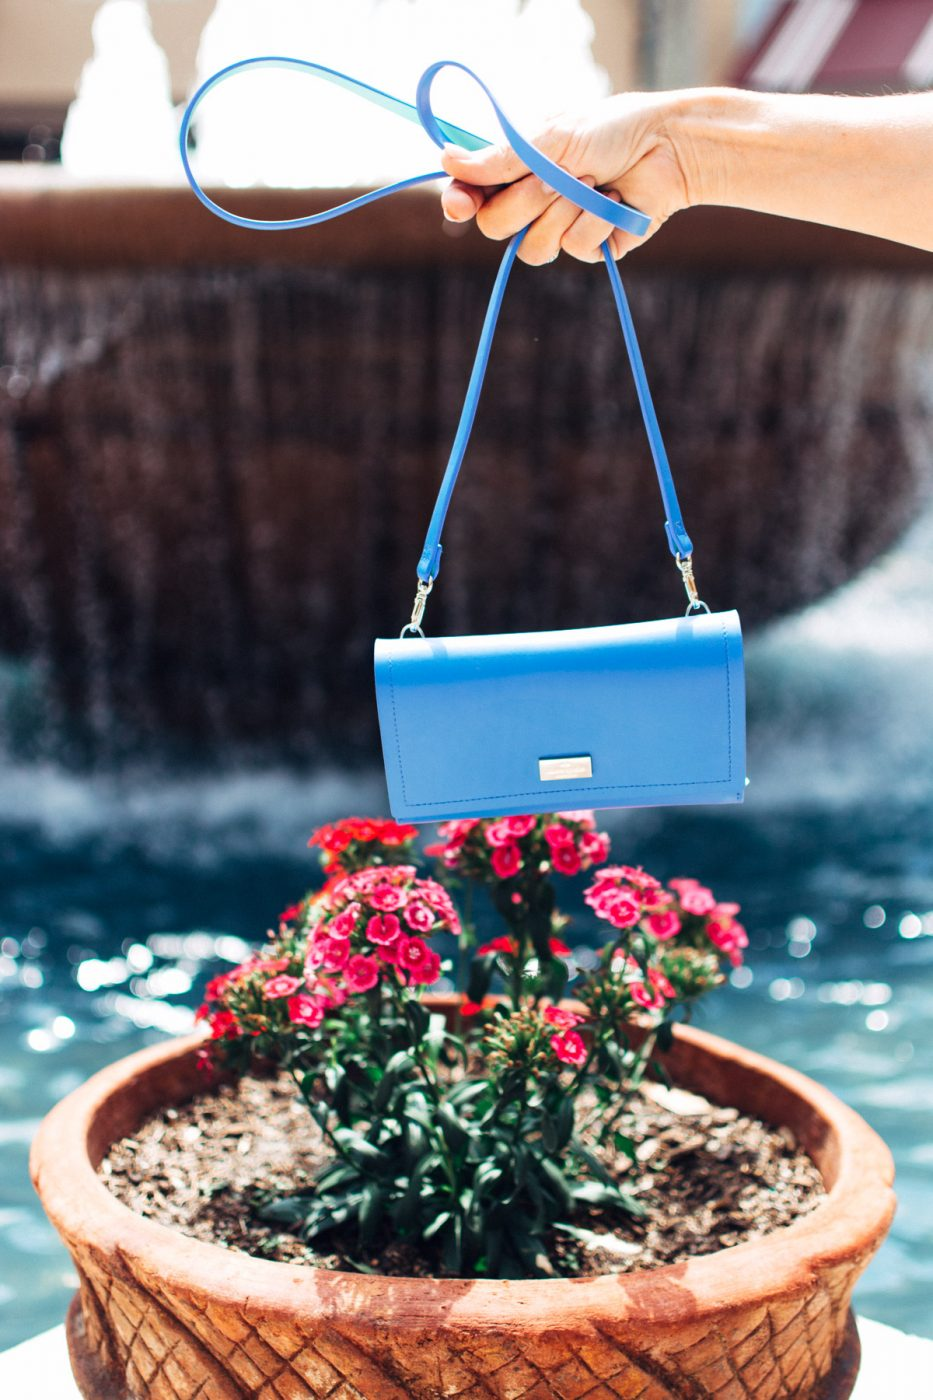 Kate Spade purse for Mother's Day - Sweet Teal